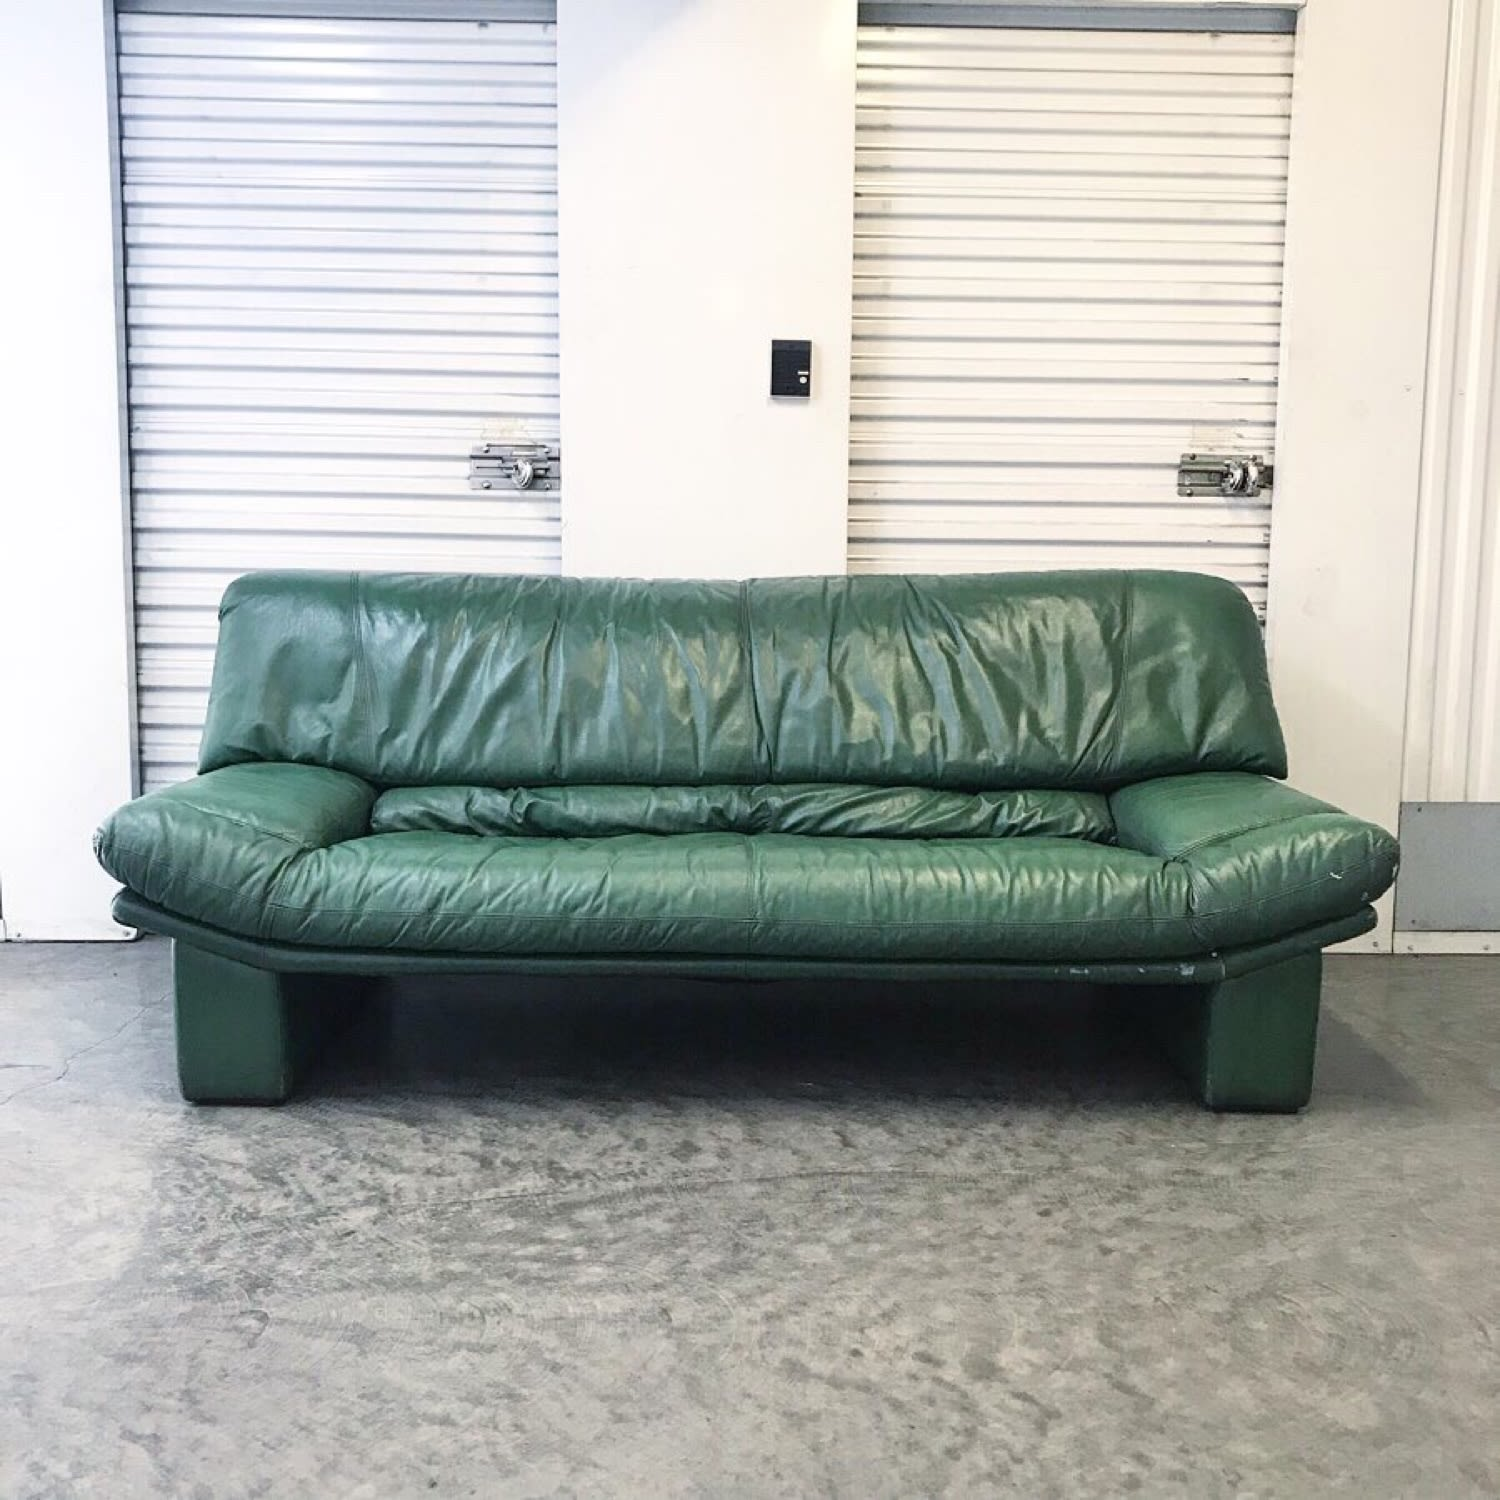 Stupendous Vintage 80S Italian Green Leather Sofa Andrewgaddart Wooden Chair Designs For Living Room Andrewgaddartcom